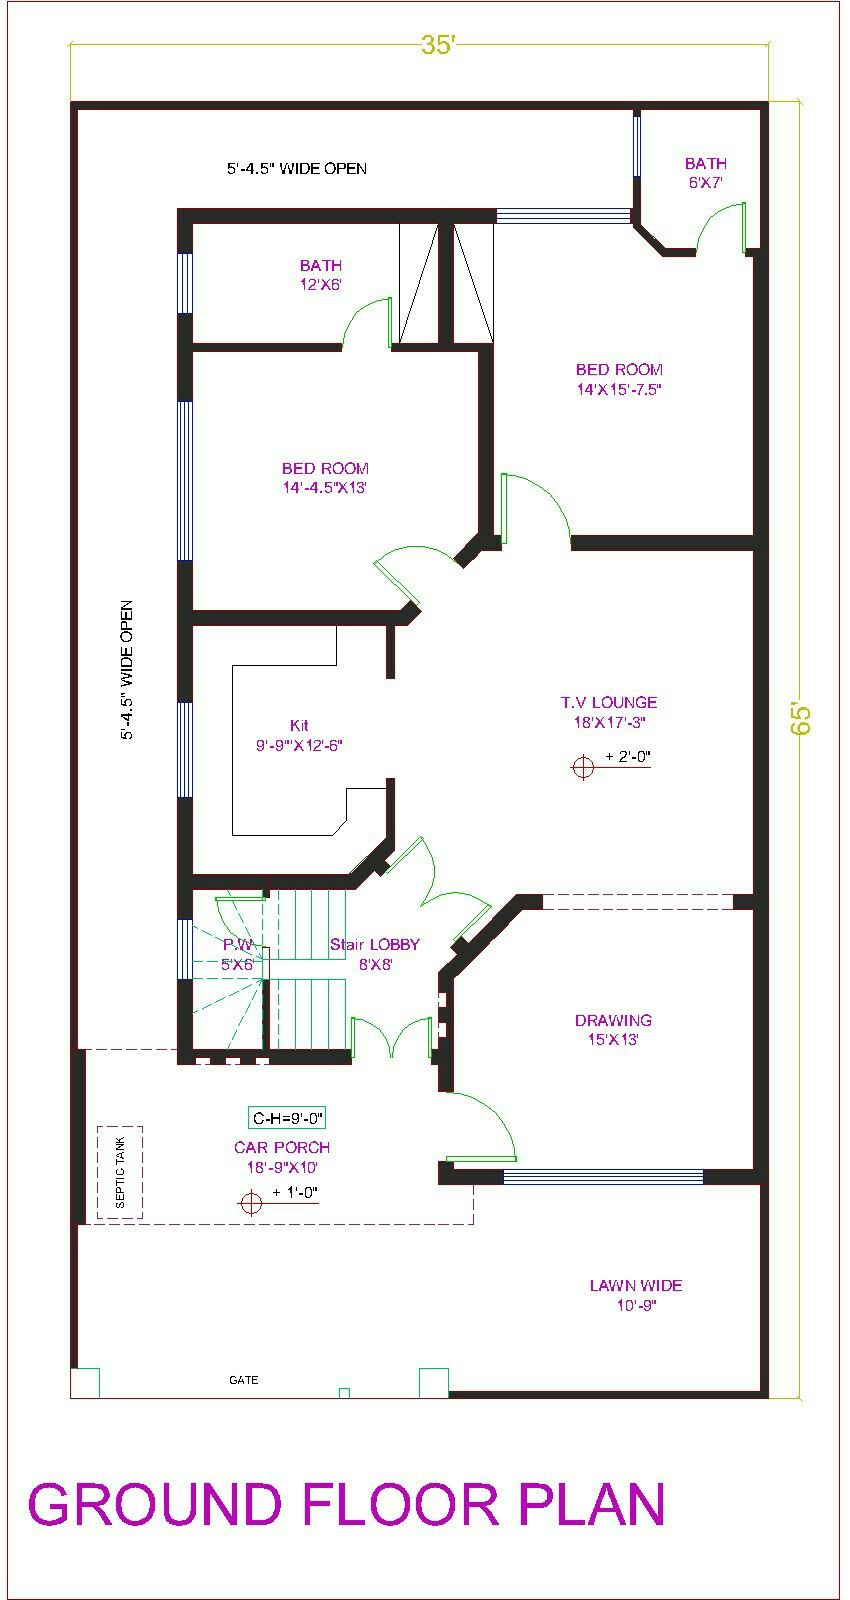 house plan drawing 40x80 islamabad | design project | pinterest